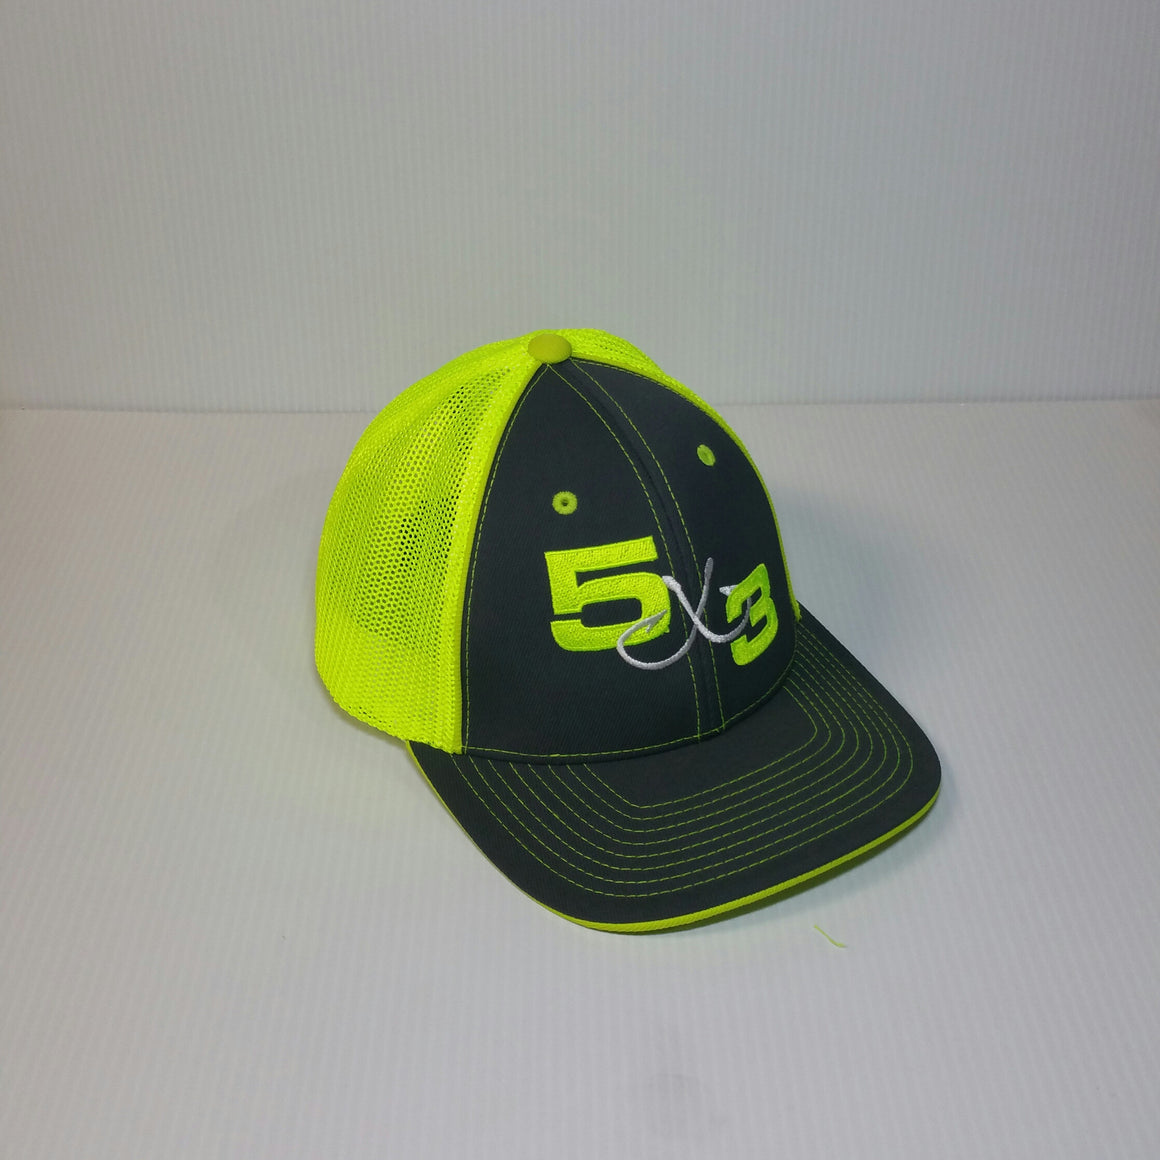 5x3 Neon Green and Gray Fitted Hat (NON FLAT BILL)